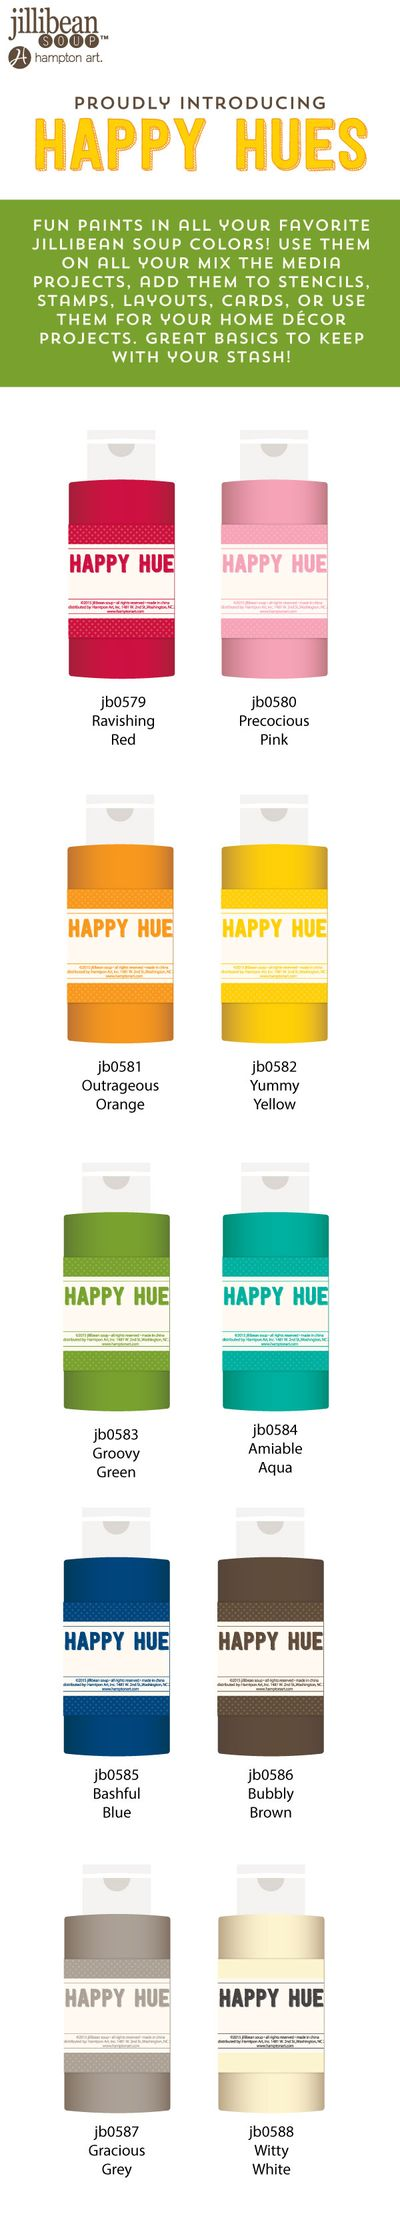 HappyHuesBlogPreview-2